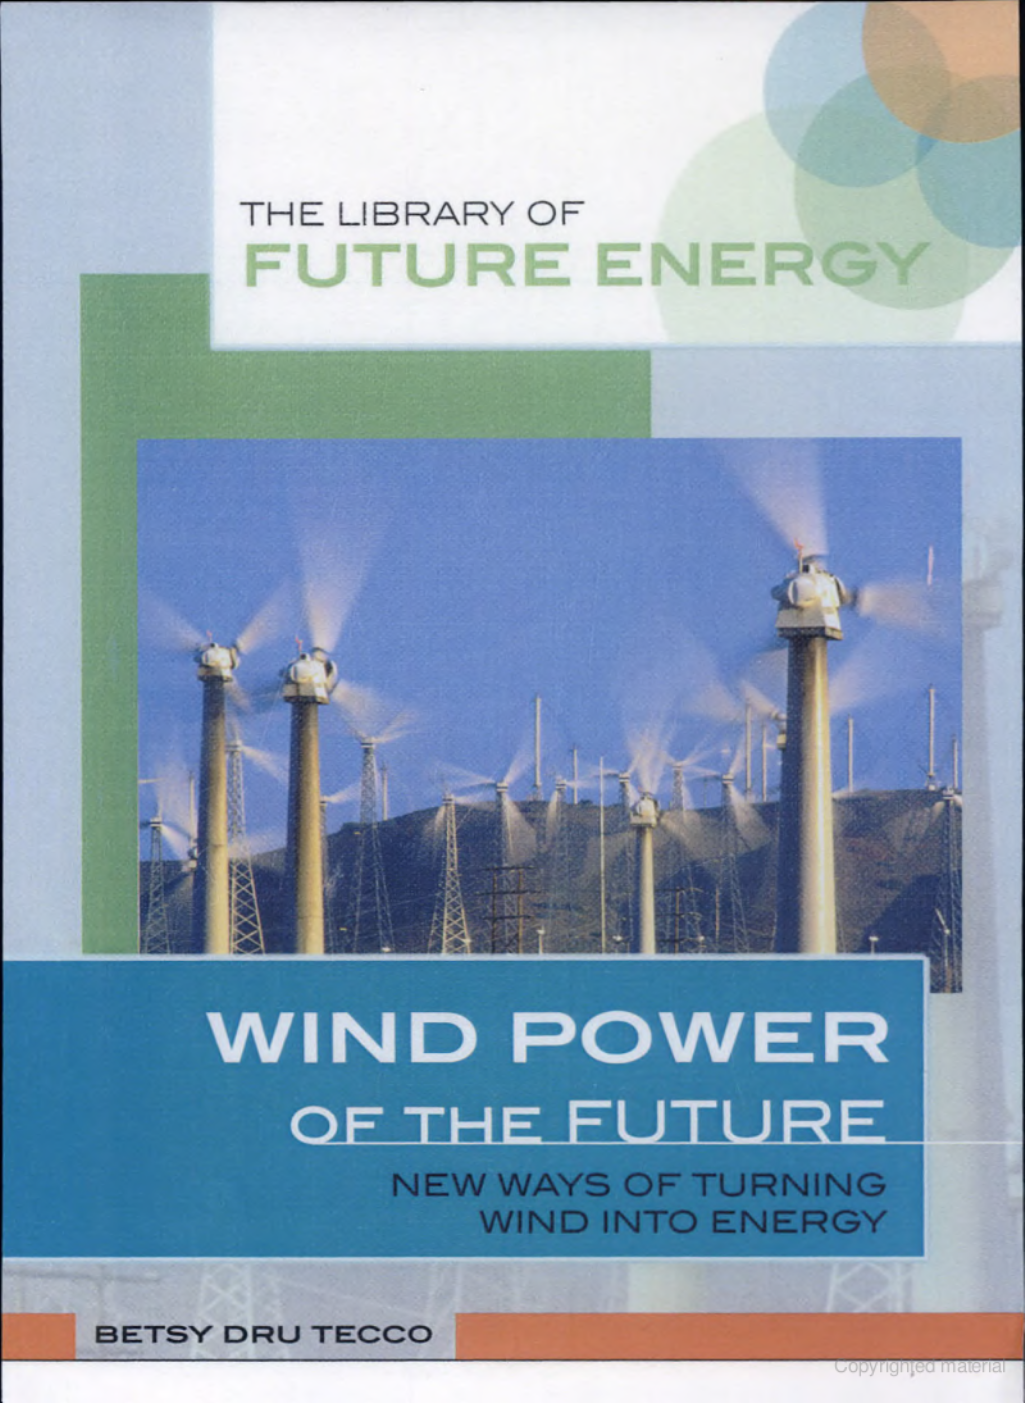 Presents the pros and cons of using wind power to help fight air pollution and meet the growing demand for electricity.